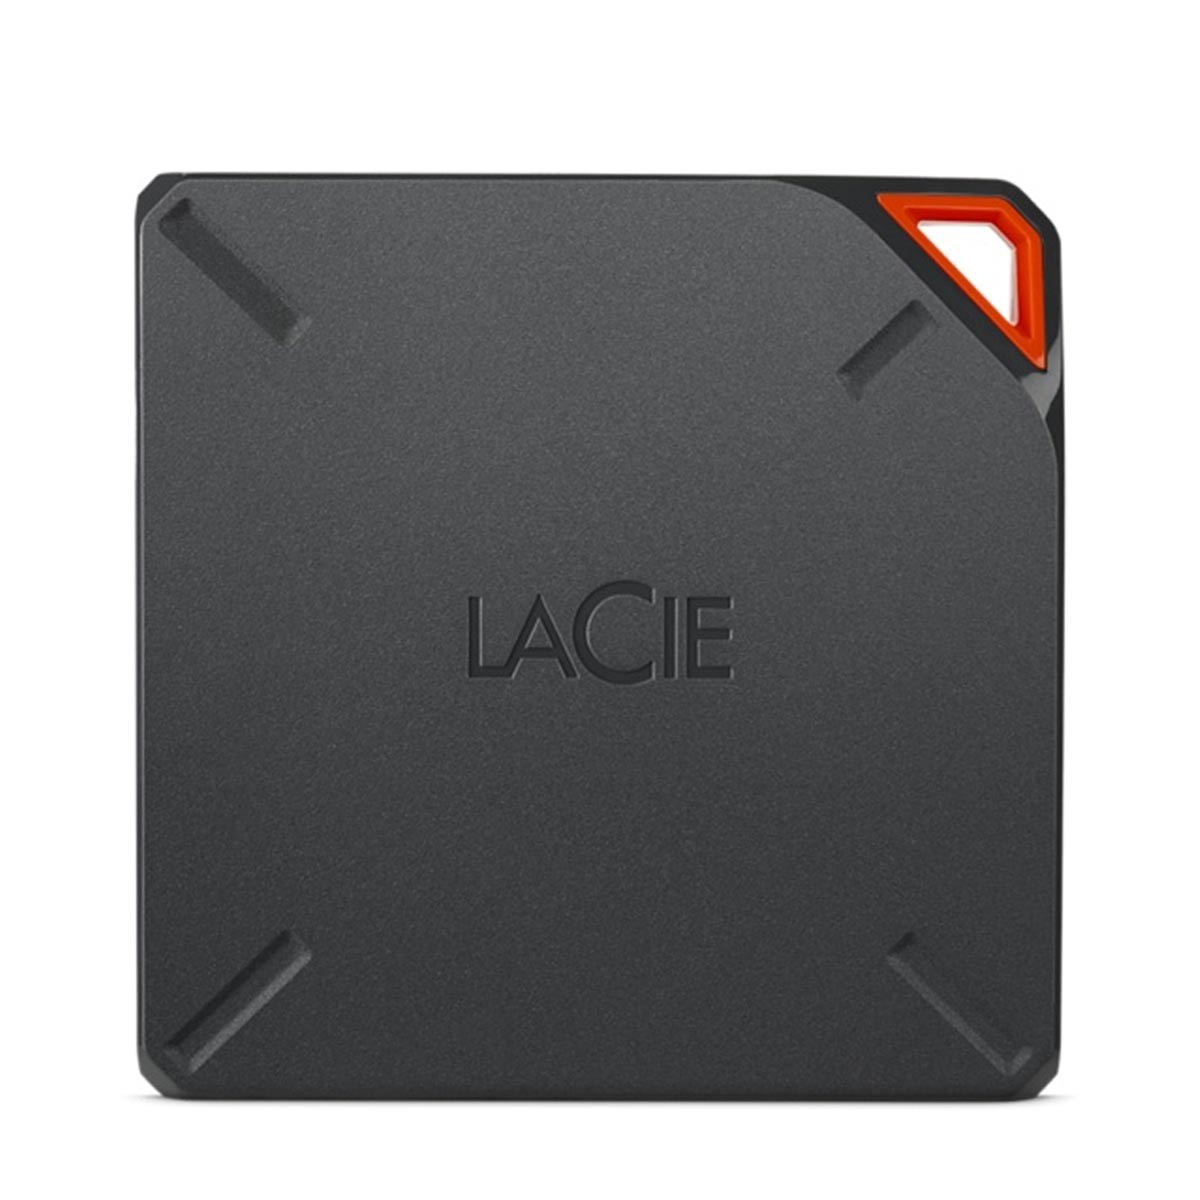 Lacie Fuel Wireless Storage - 2TB